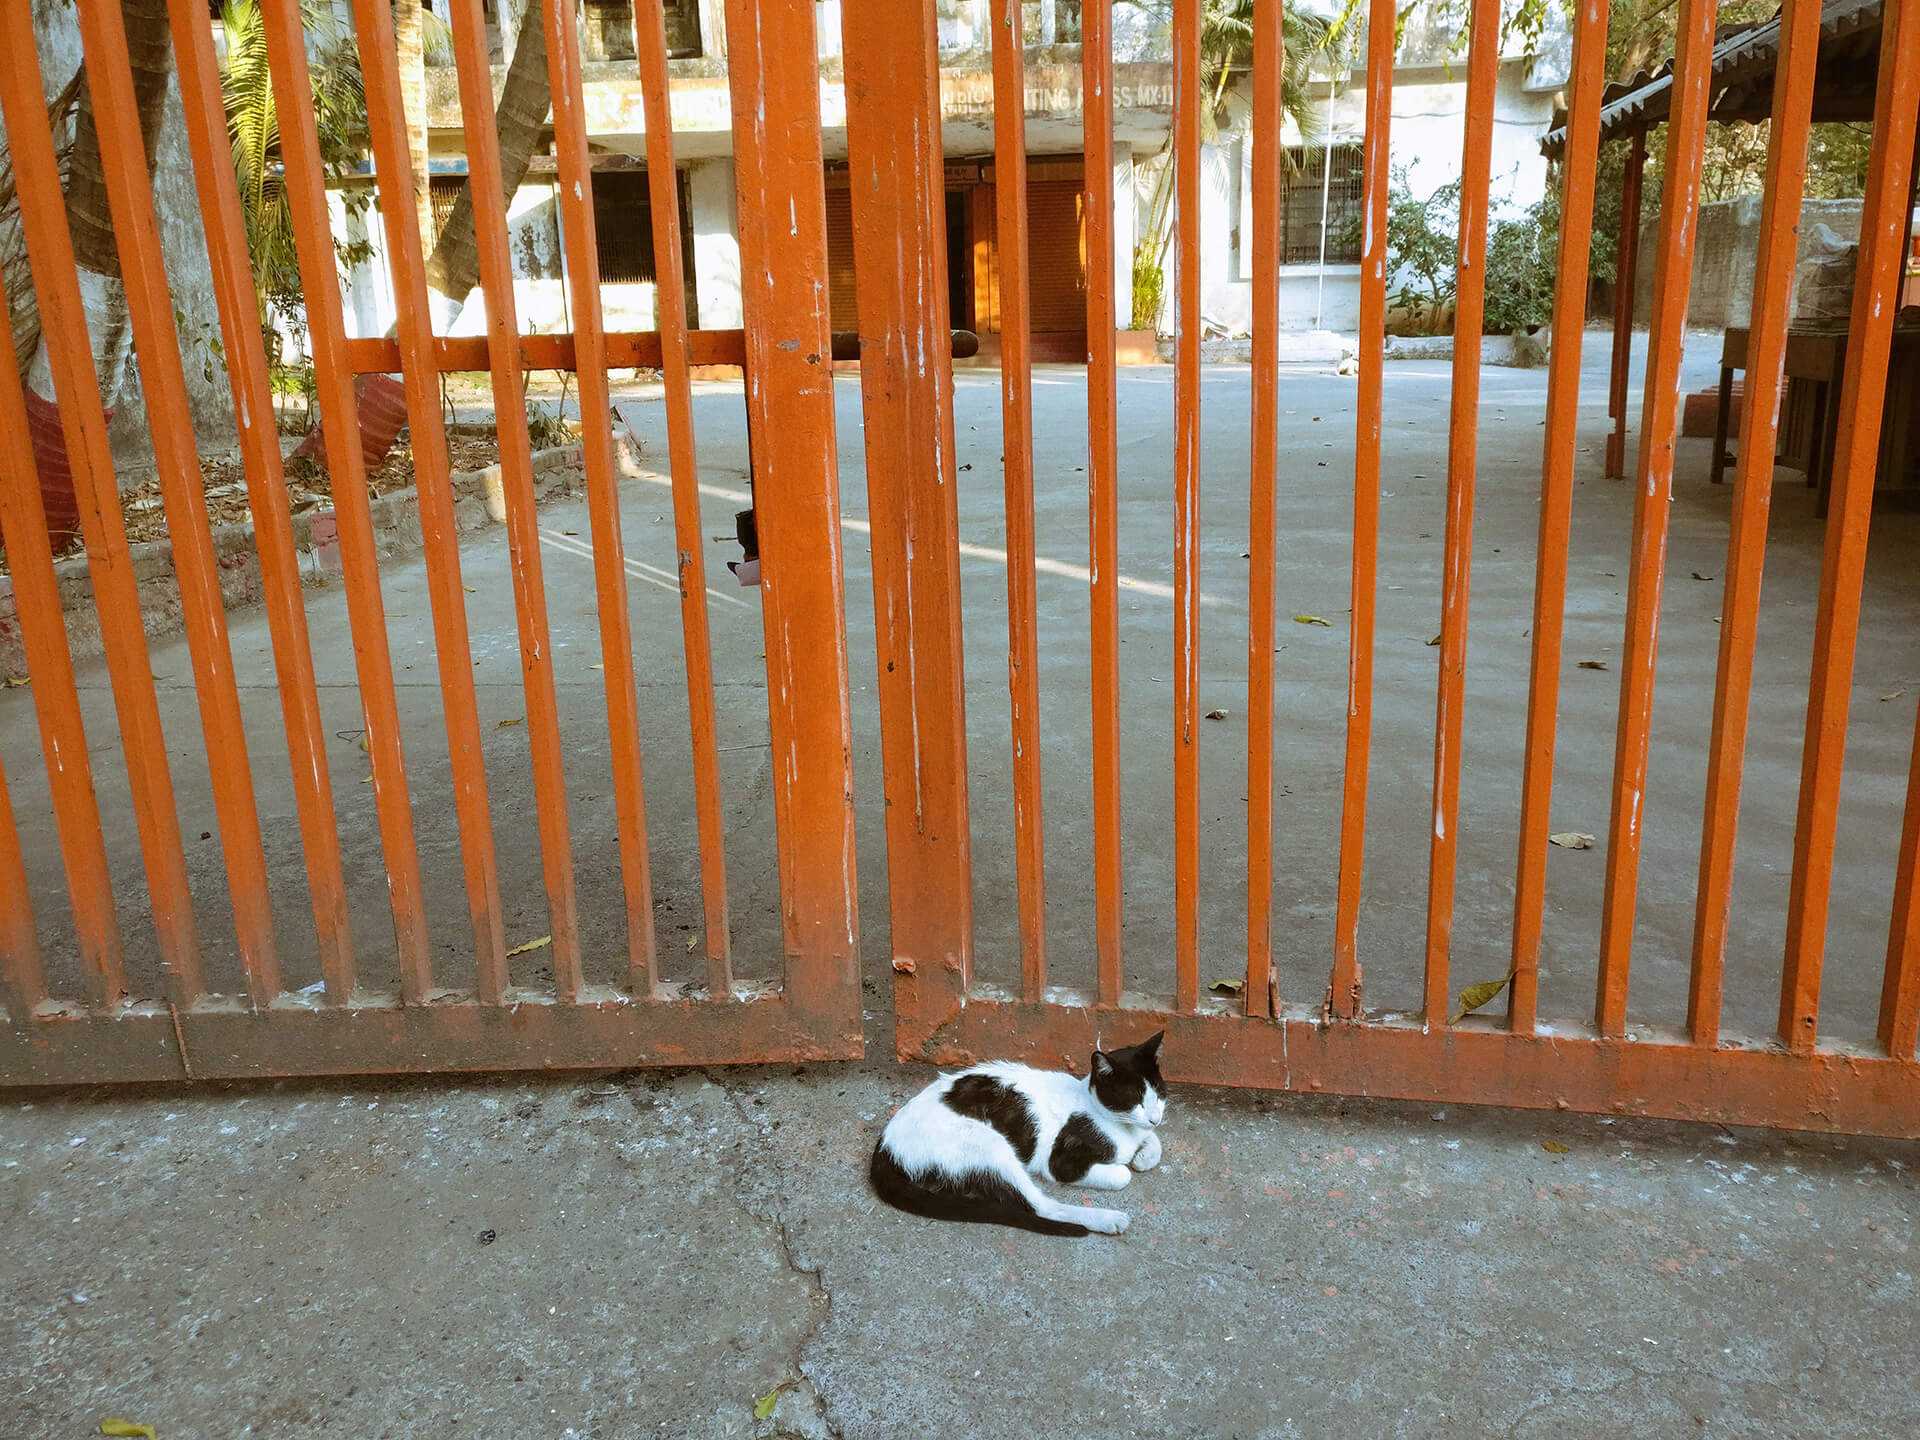 A cat rests at the gate in Mumbai. The guard (not seen in the picture) rests at the end of the gate | Gated communities are destroying public life of Indian cities | STIRworld